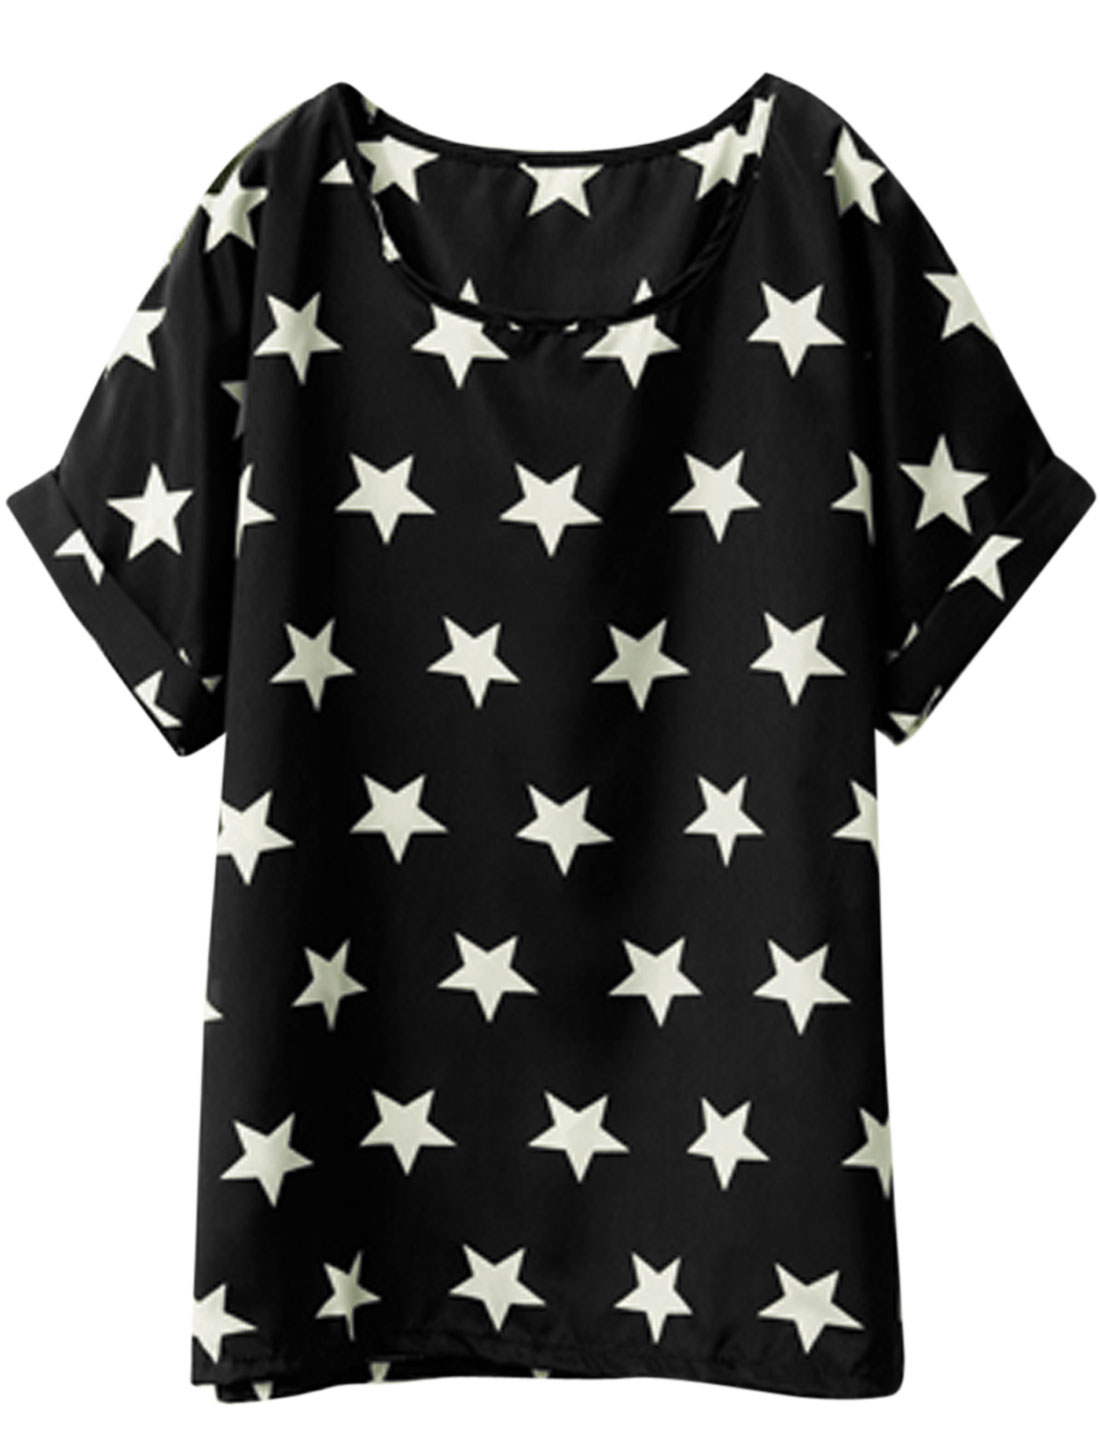 Lady Round Neck Short Batwing Sleeve Stars Pattern Tee Black XS